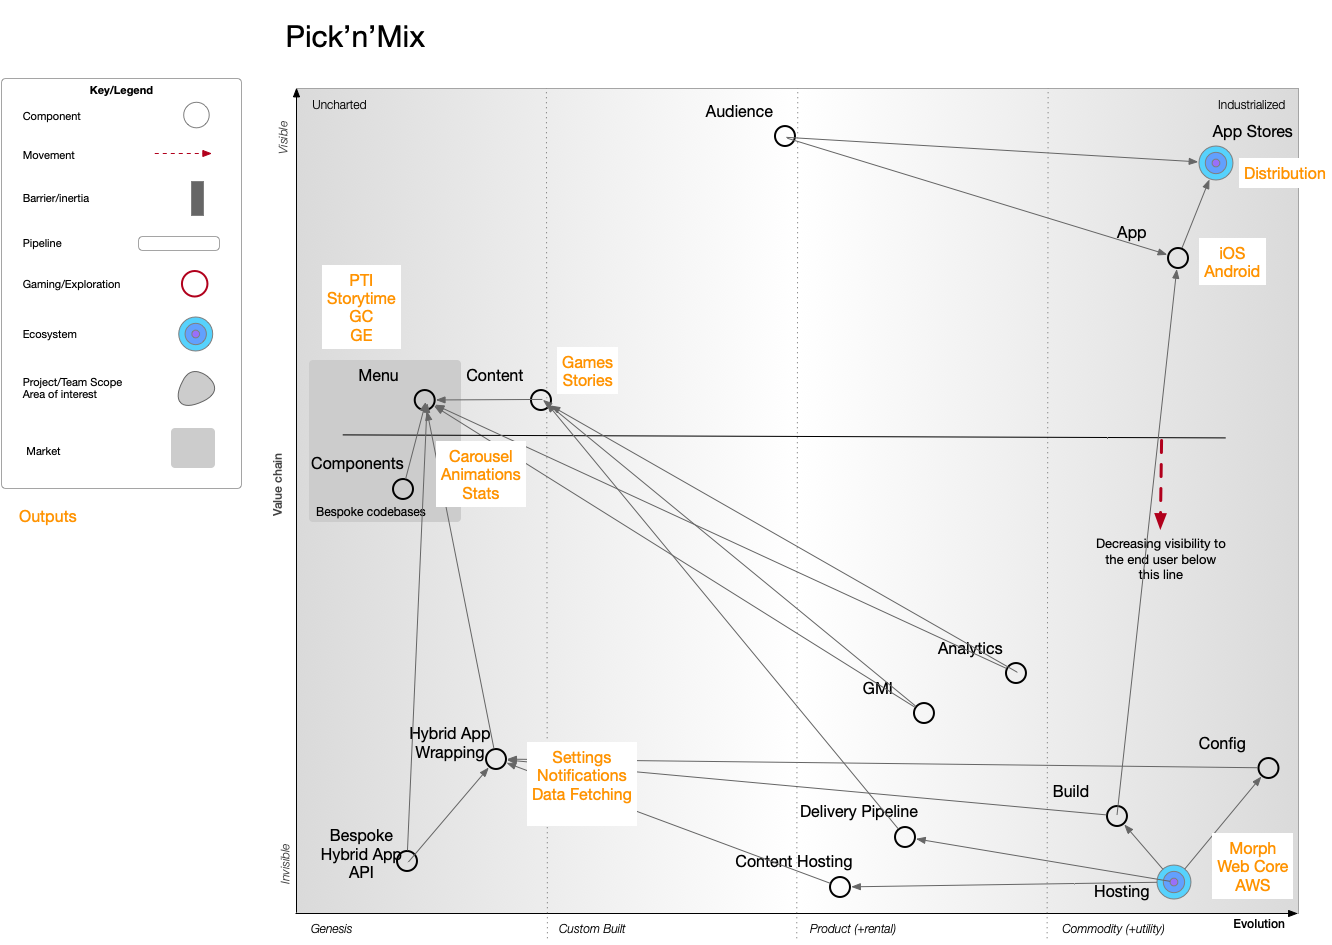 A value maturity Wardley Map for Pick'n'Mix.